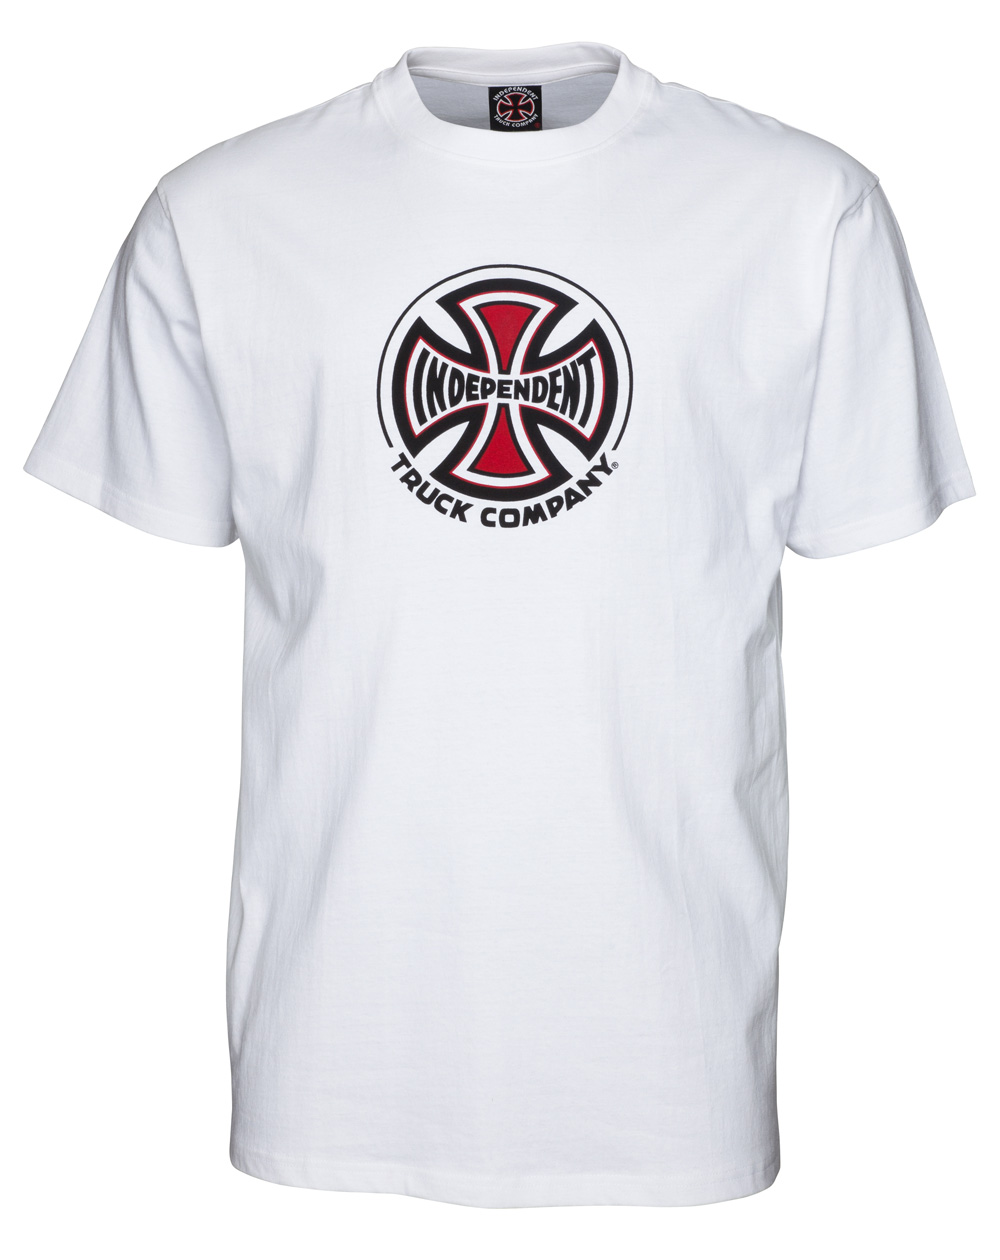 Independent Men's T-Shirt Truck Co. White